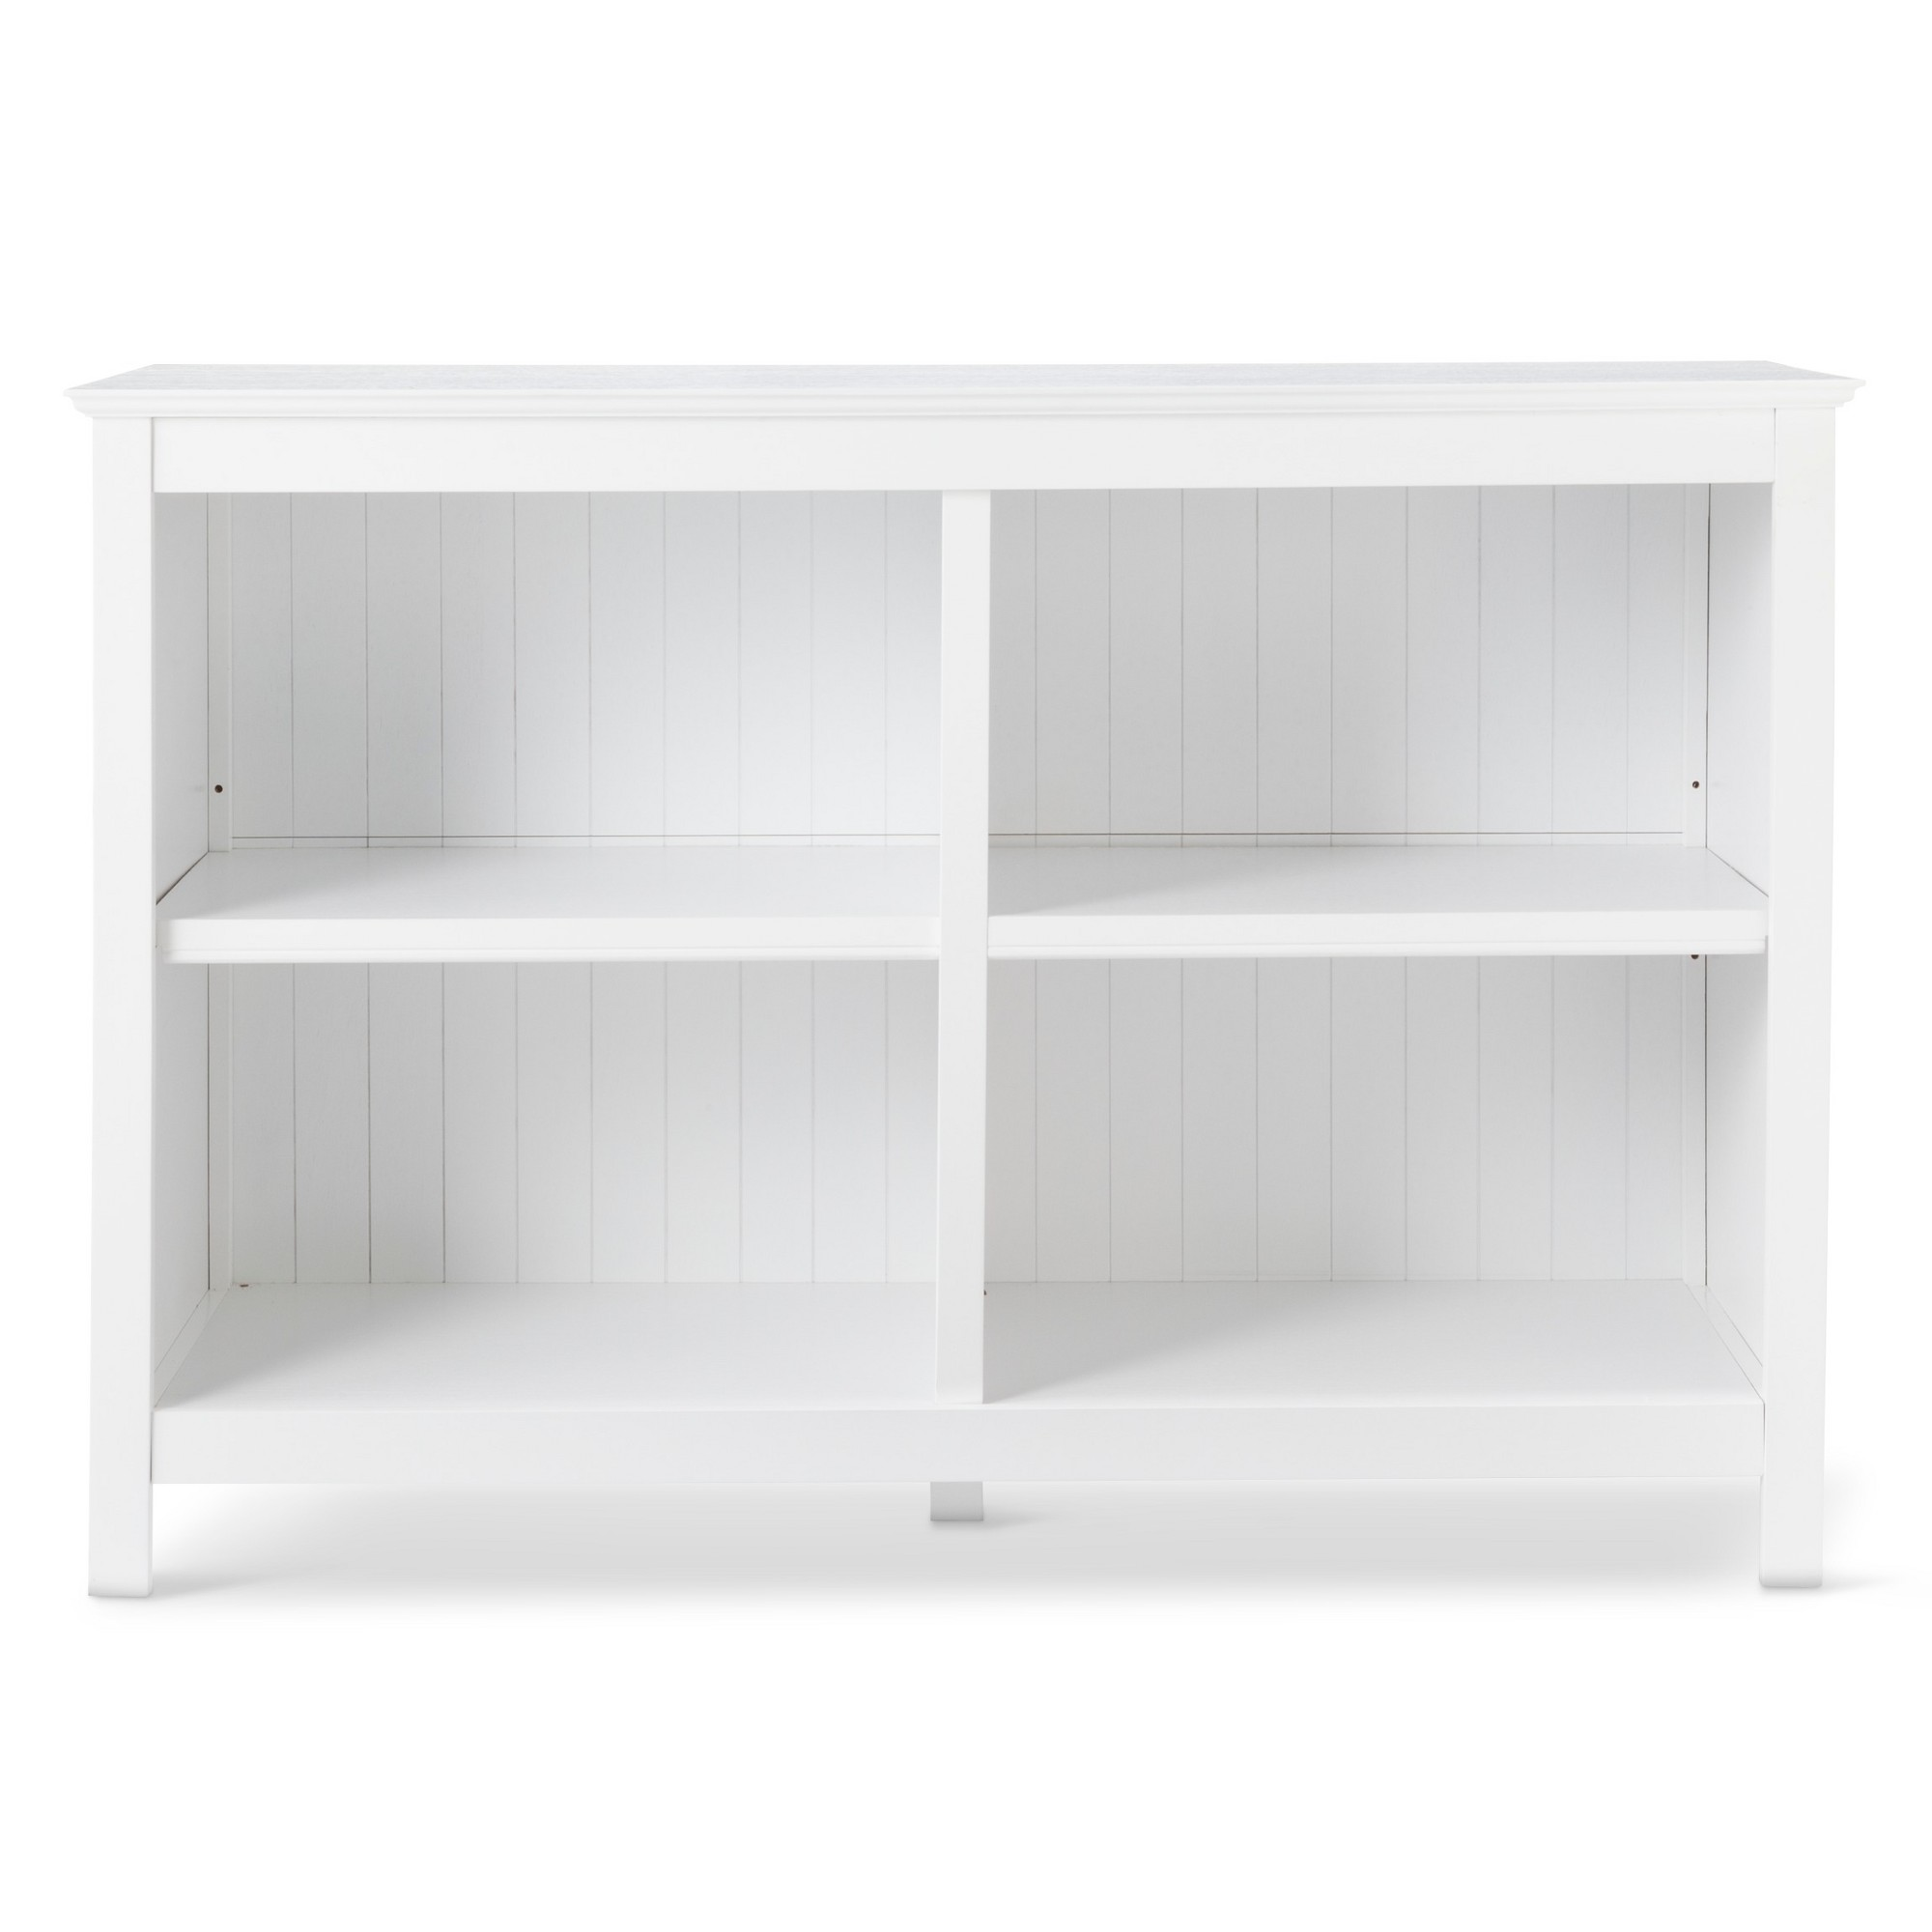 Stafford Small 4 Cube Horizontal Bookcase  White